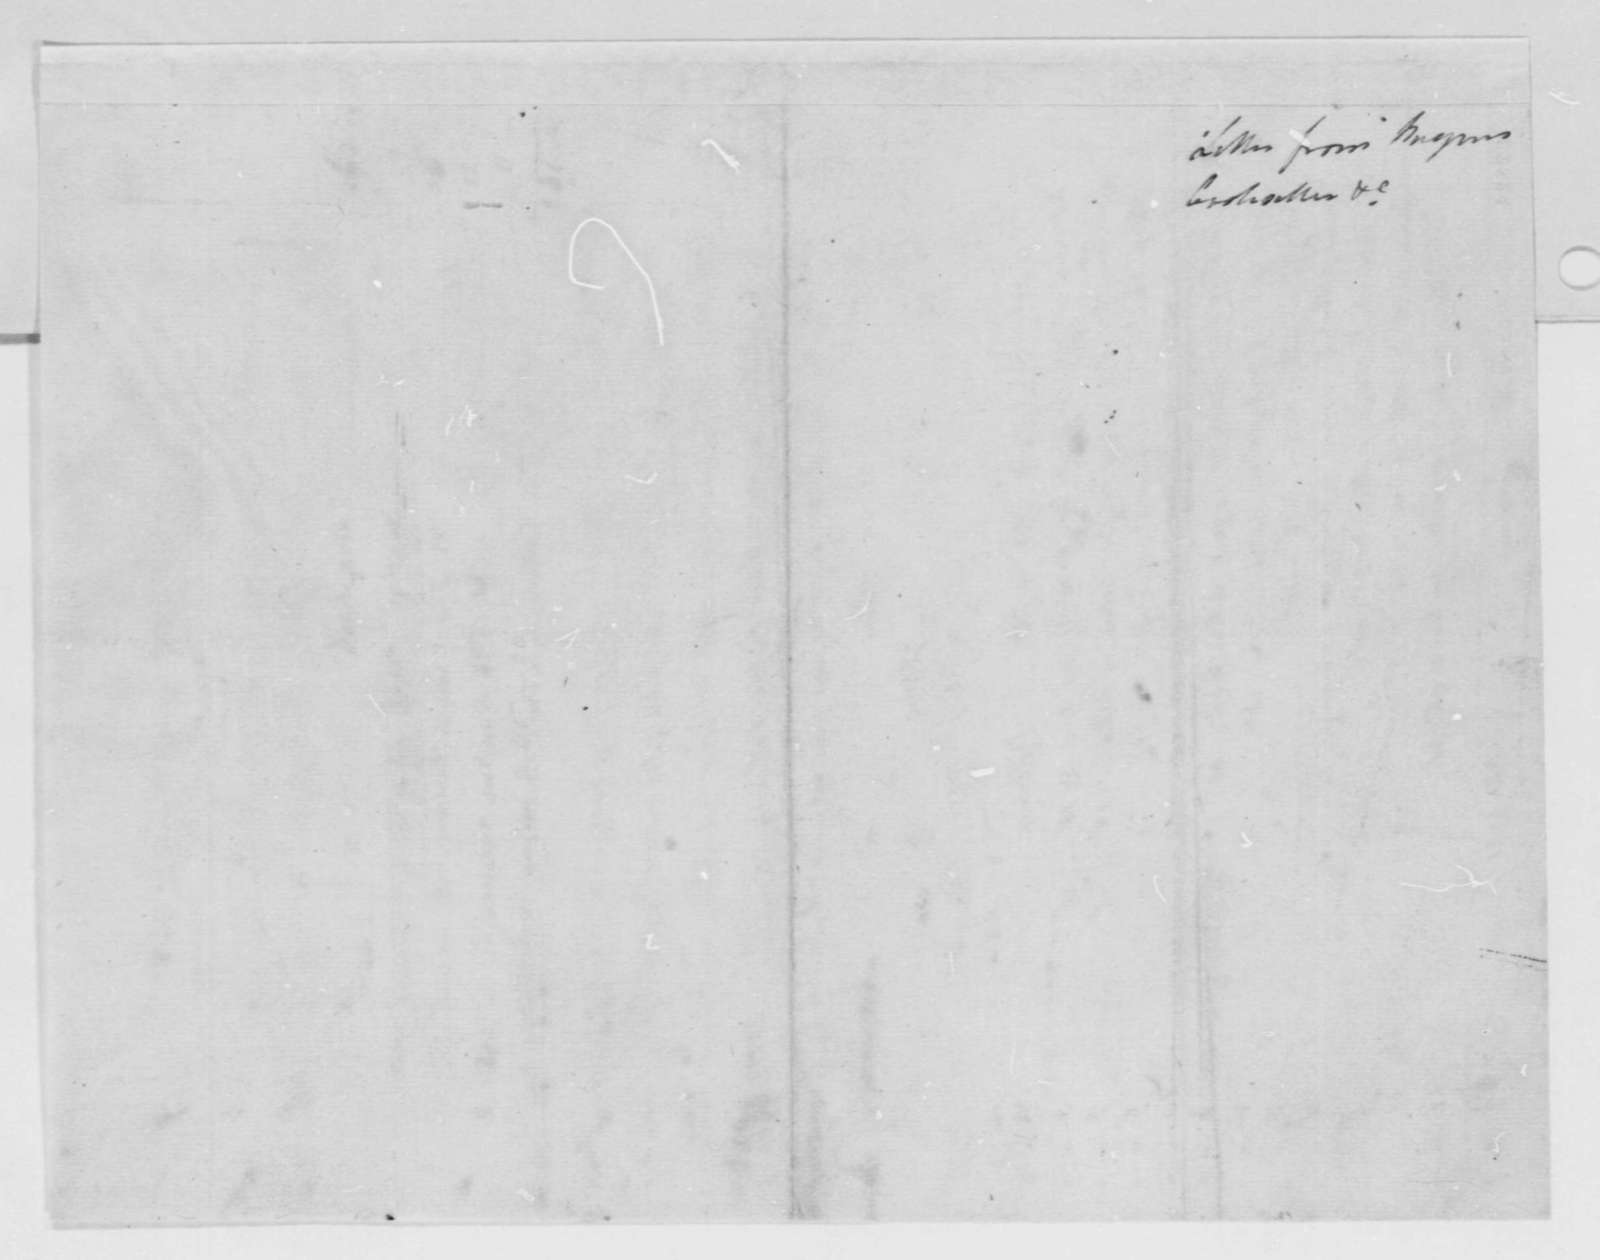 Charles de Pougens to Robert Livingston, June 8, 1803, in French